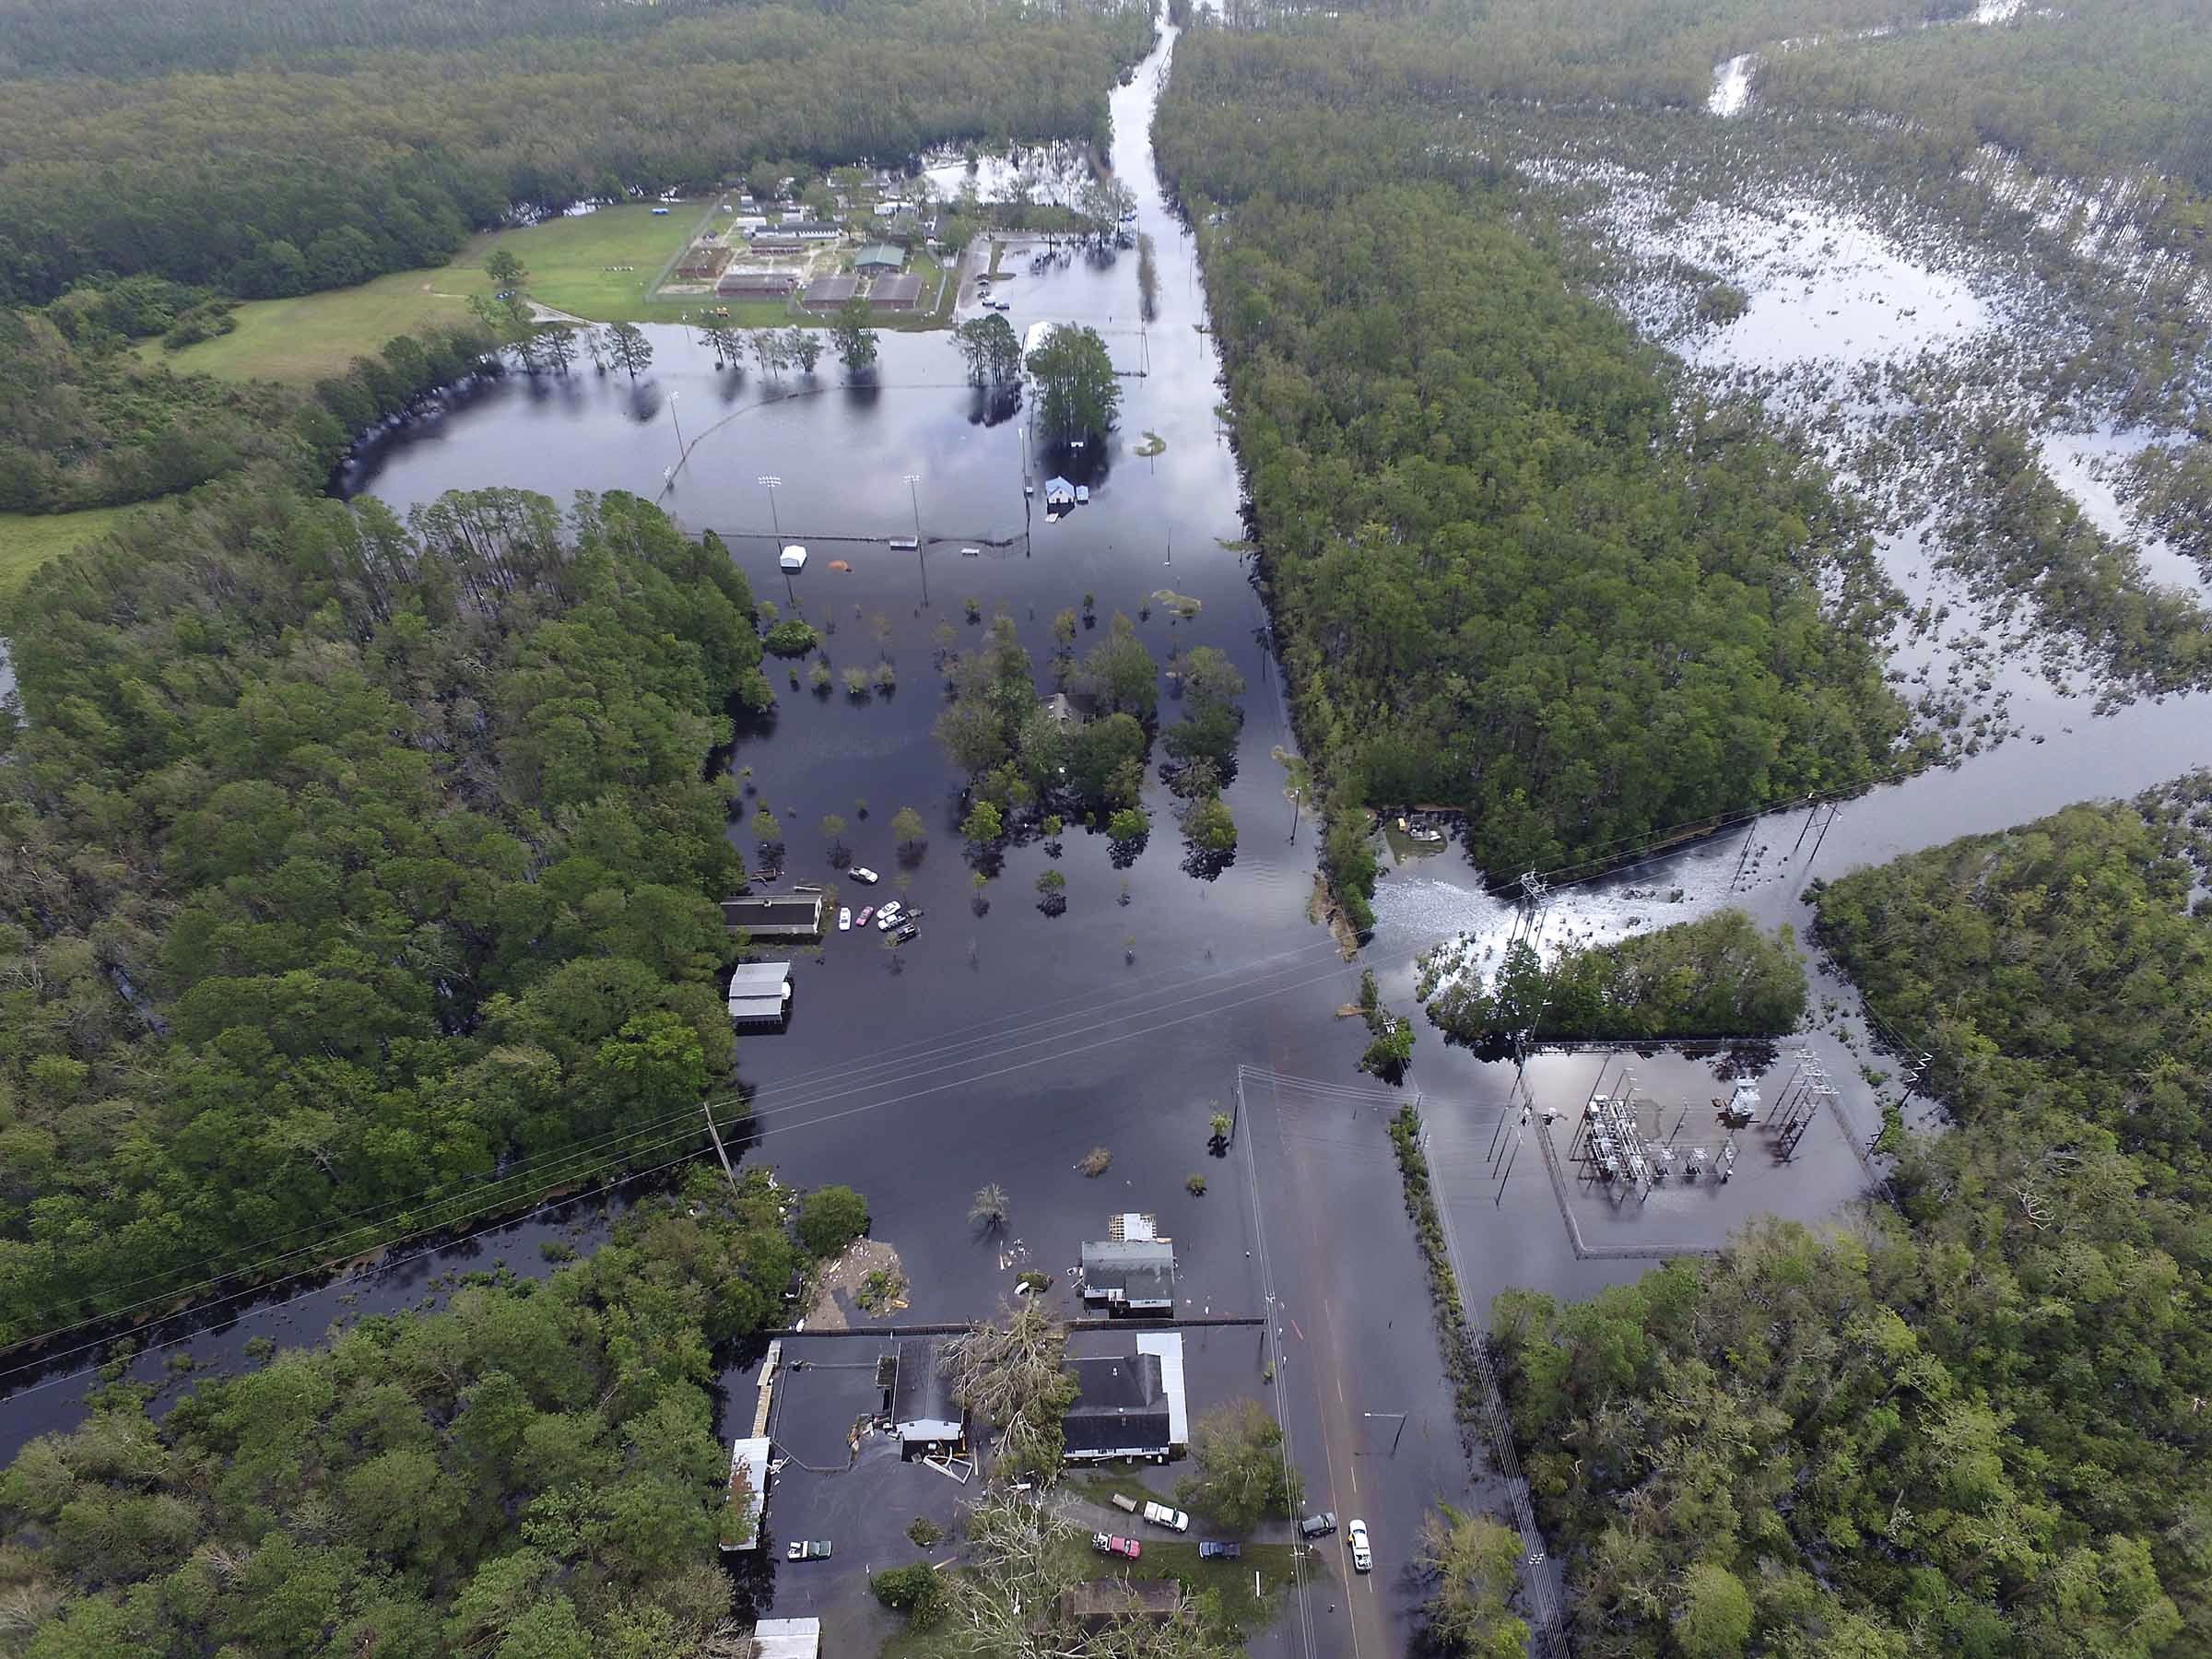 Relaxed environmental regulations heighten risk during natural disasters